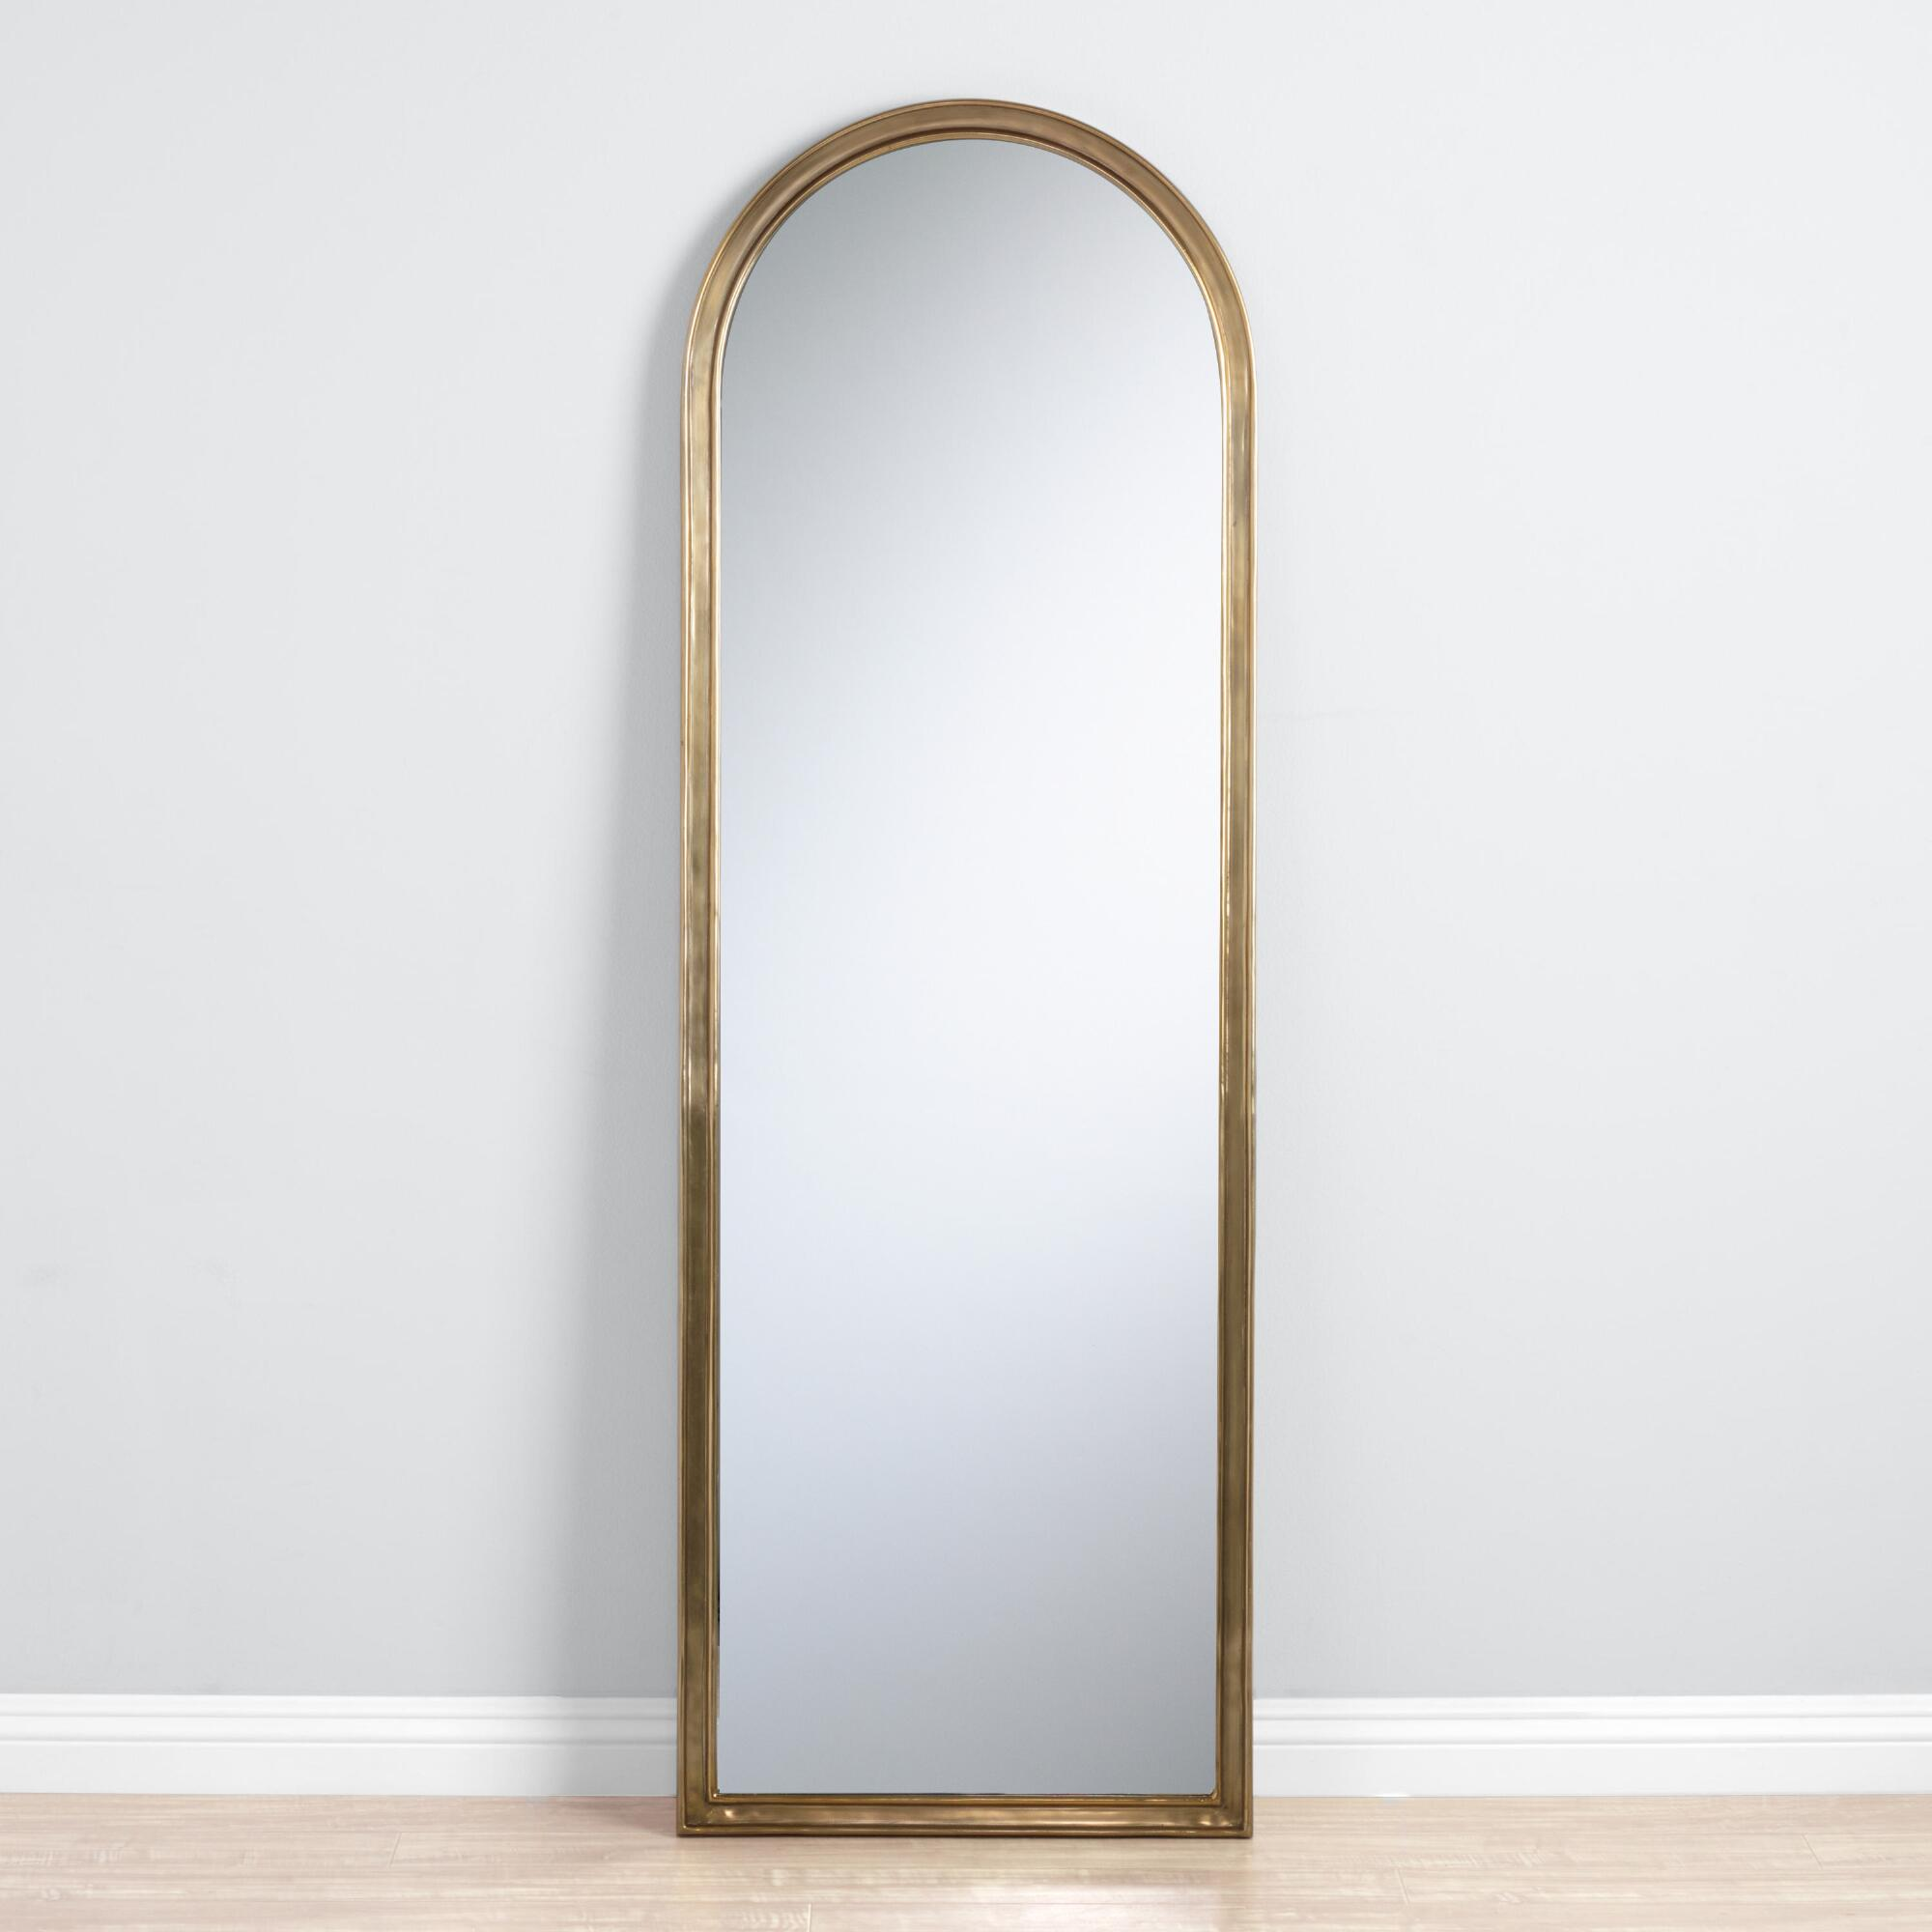 Large mirrors and leaning floor mirrors world market arched gold mirror amipublicfo Gallery